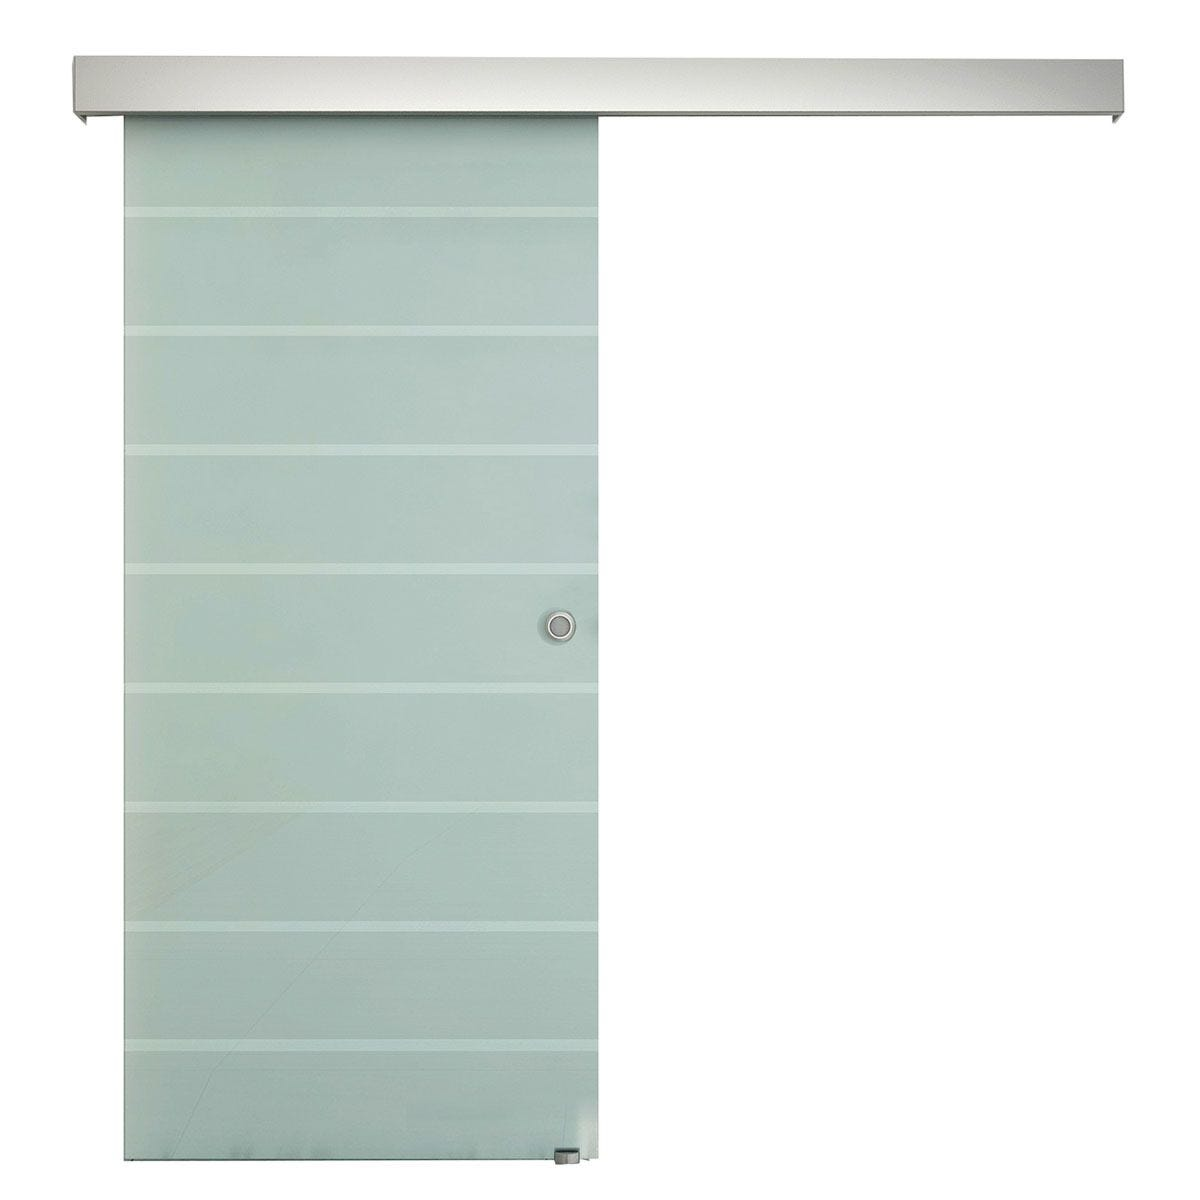 HOMCOM Tempered Glass Sliding Barn Door Kit Aluminum-alloy Rail W/Handle-Frosted Glass with Stripes